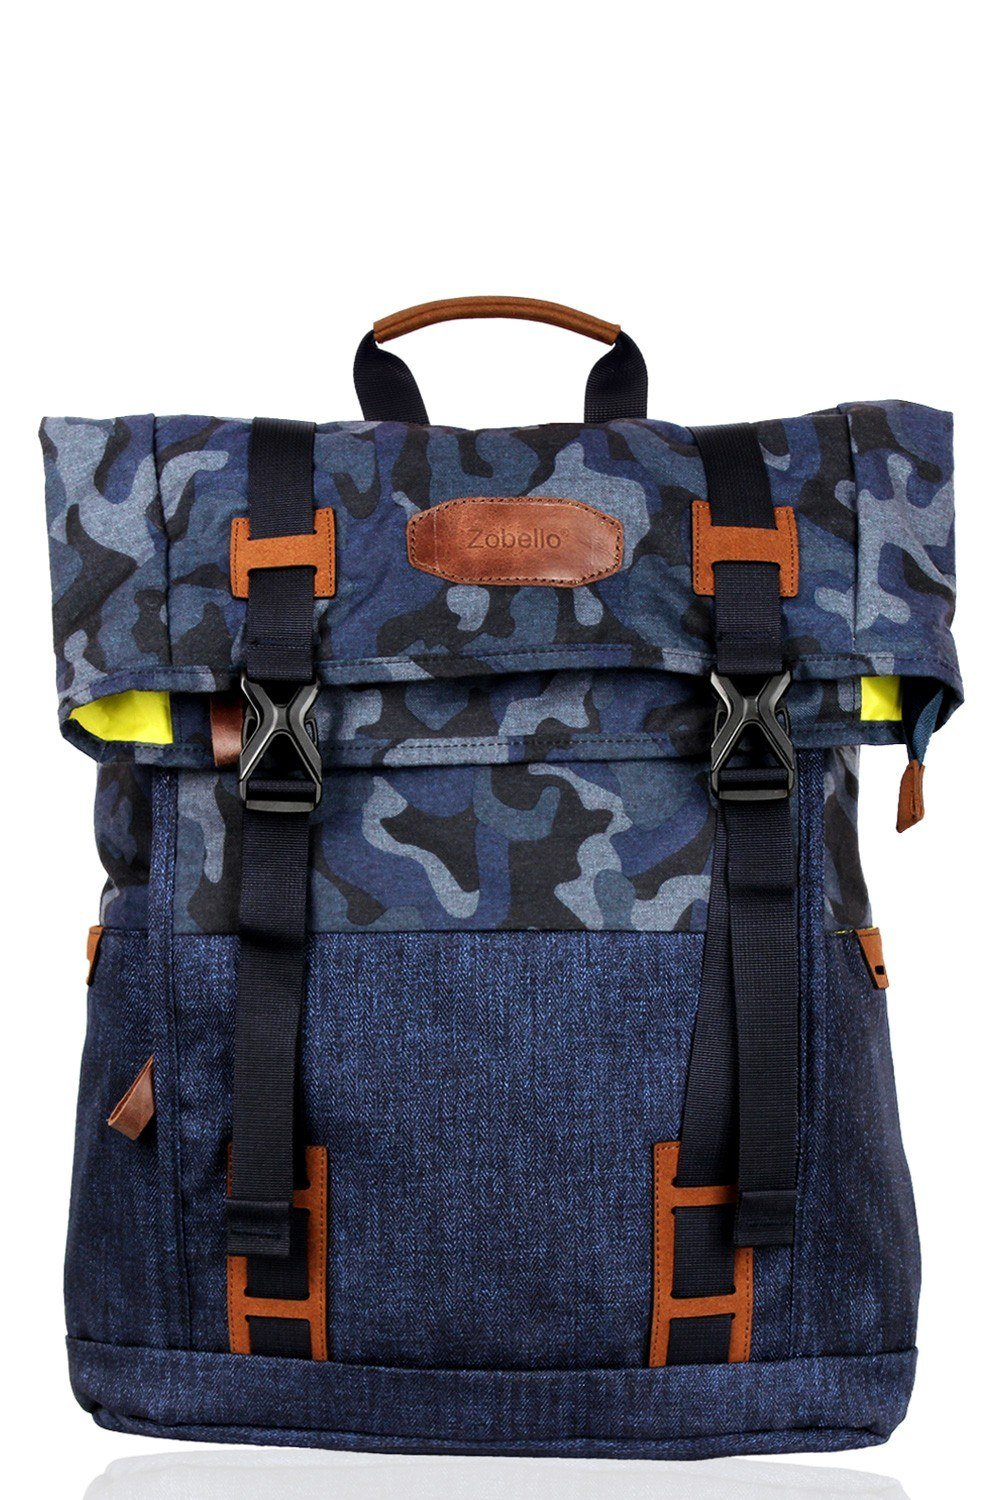 Buy Online Navy Camo Lightweight Laptop Travel Backpack for Mens ... c197f4129fd9e